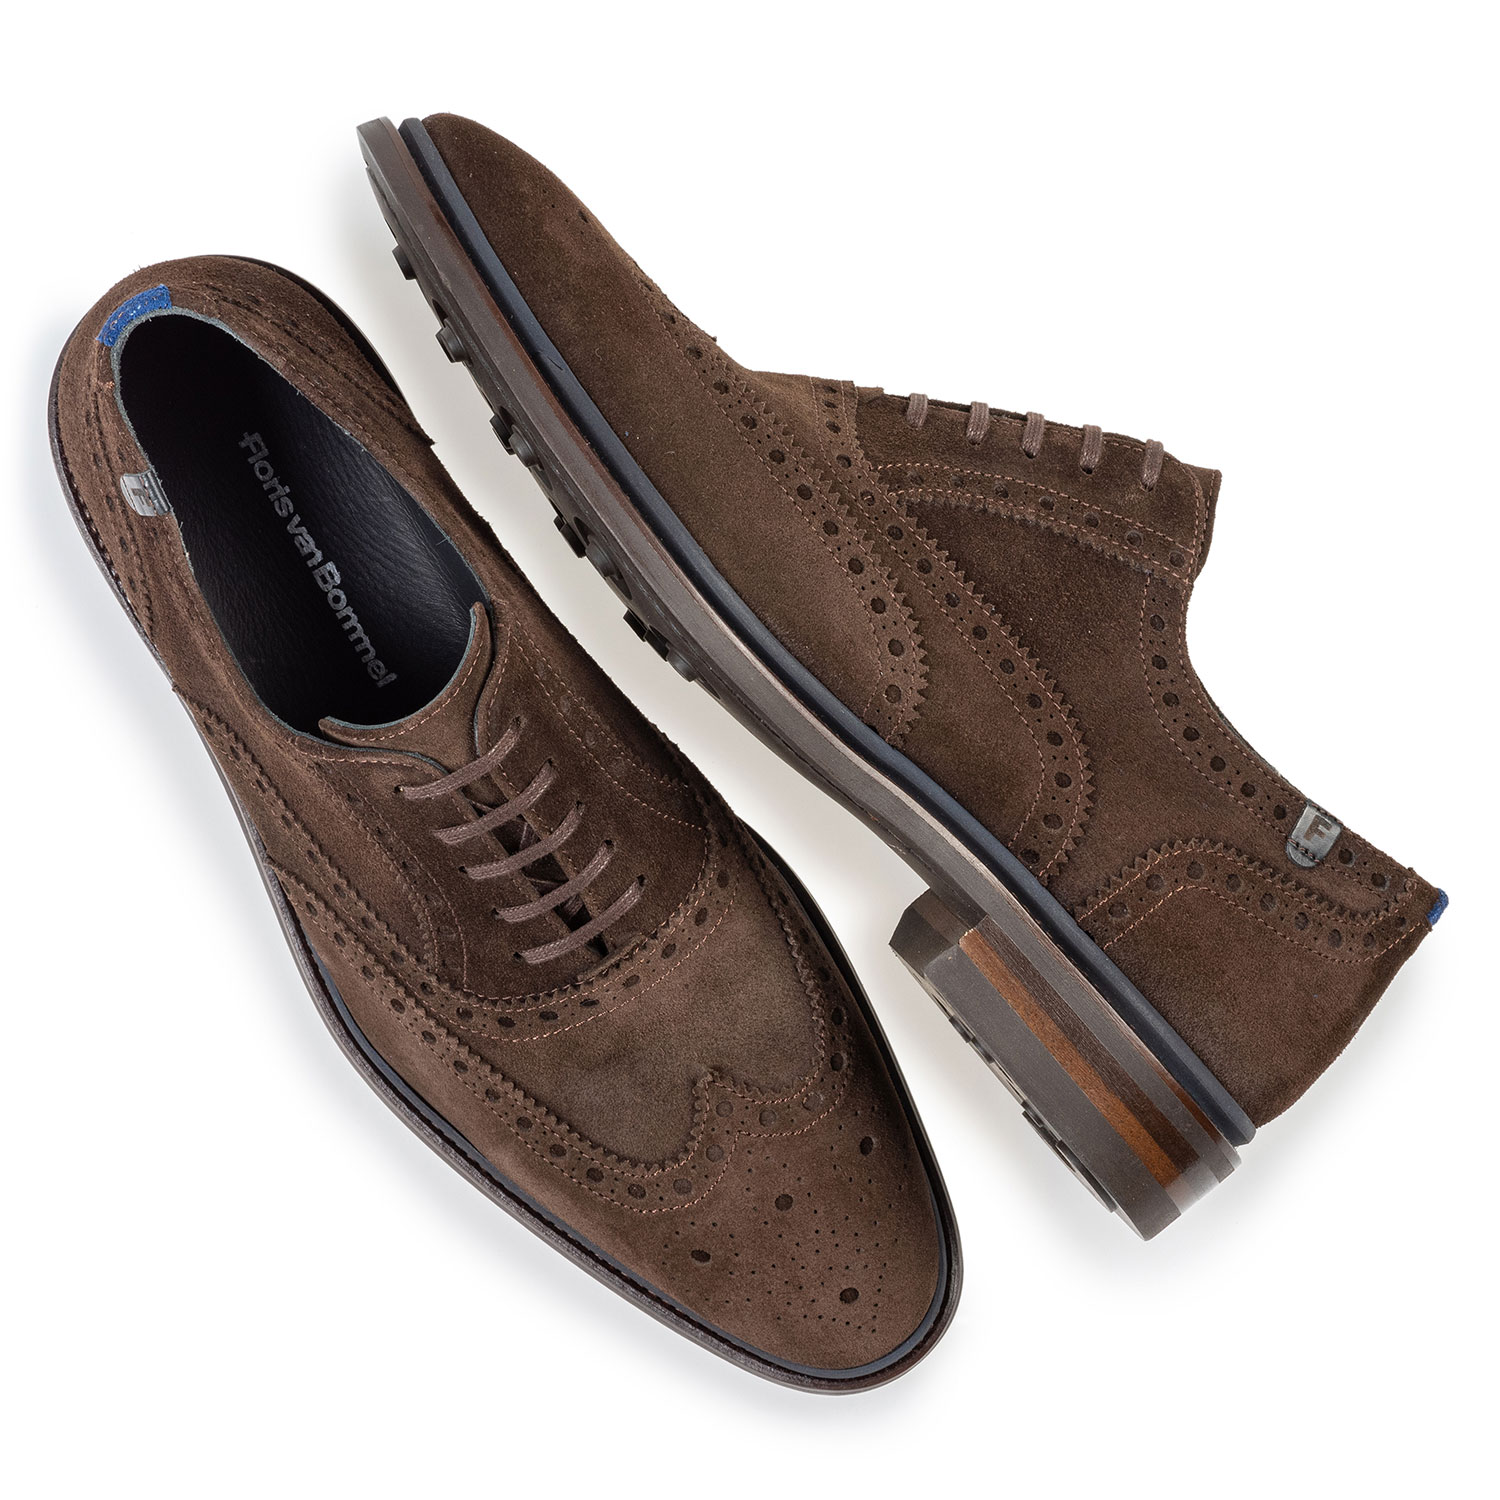 19172/02 - Brogue suede leather dark brown